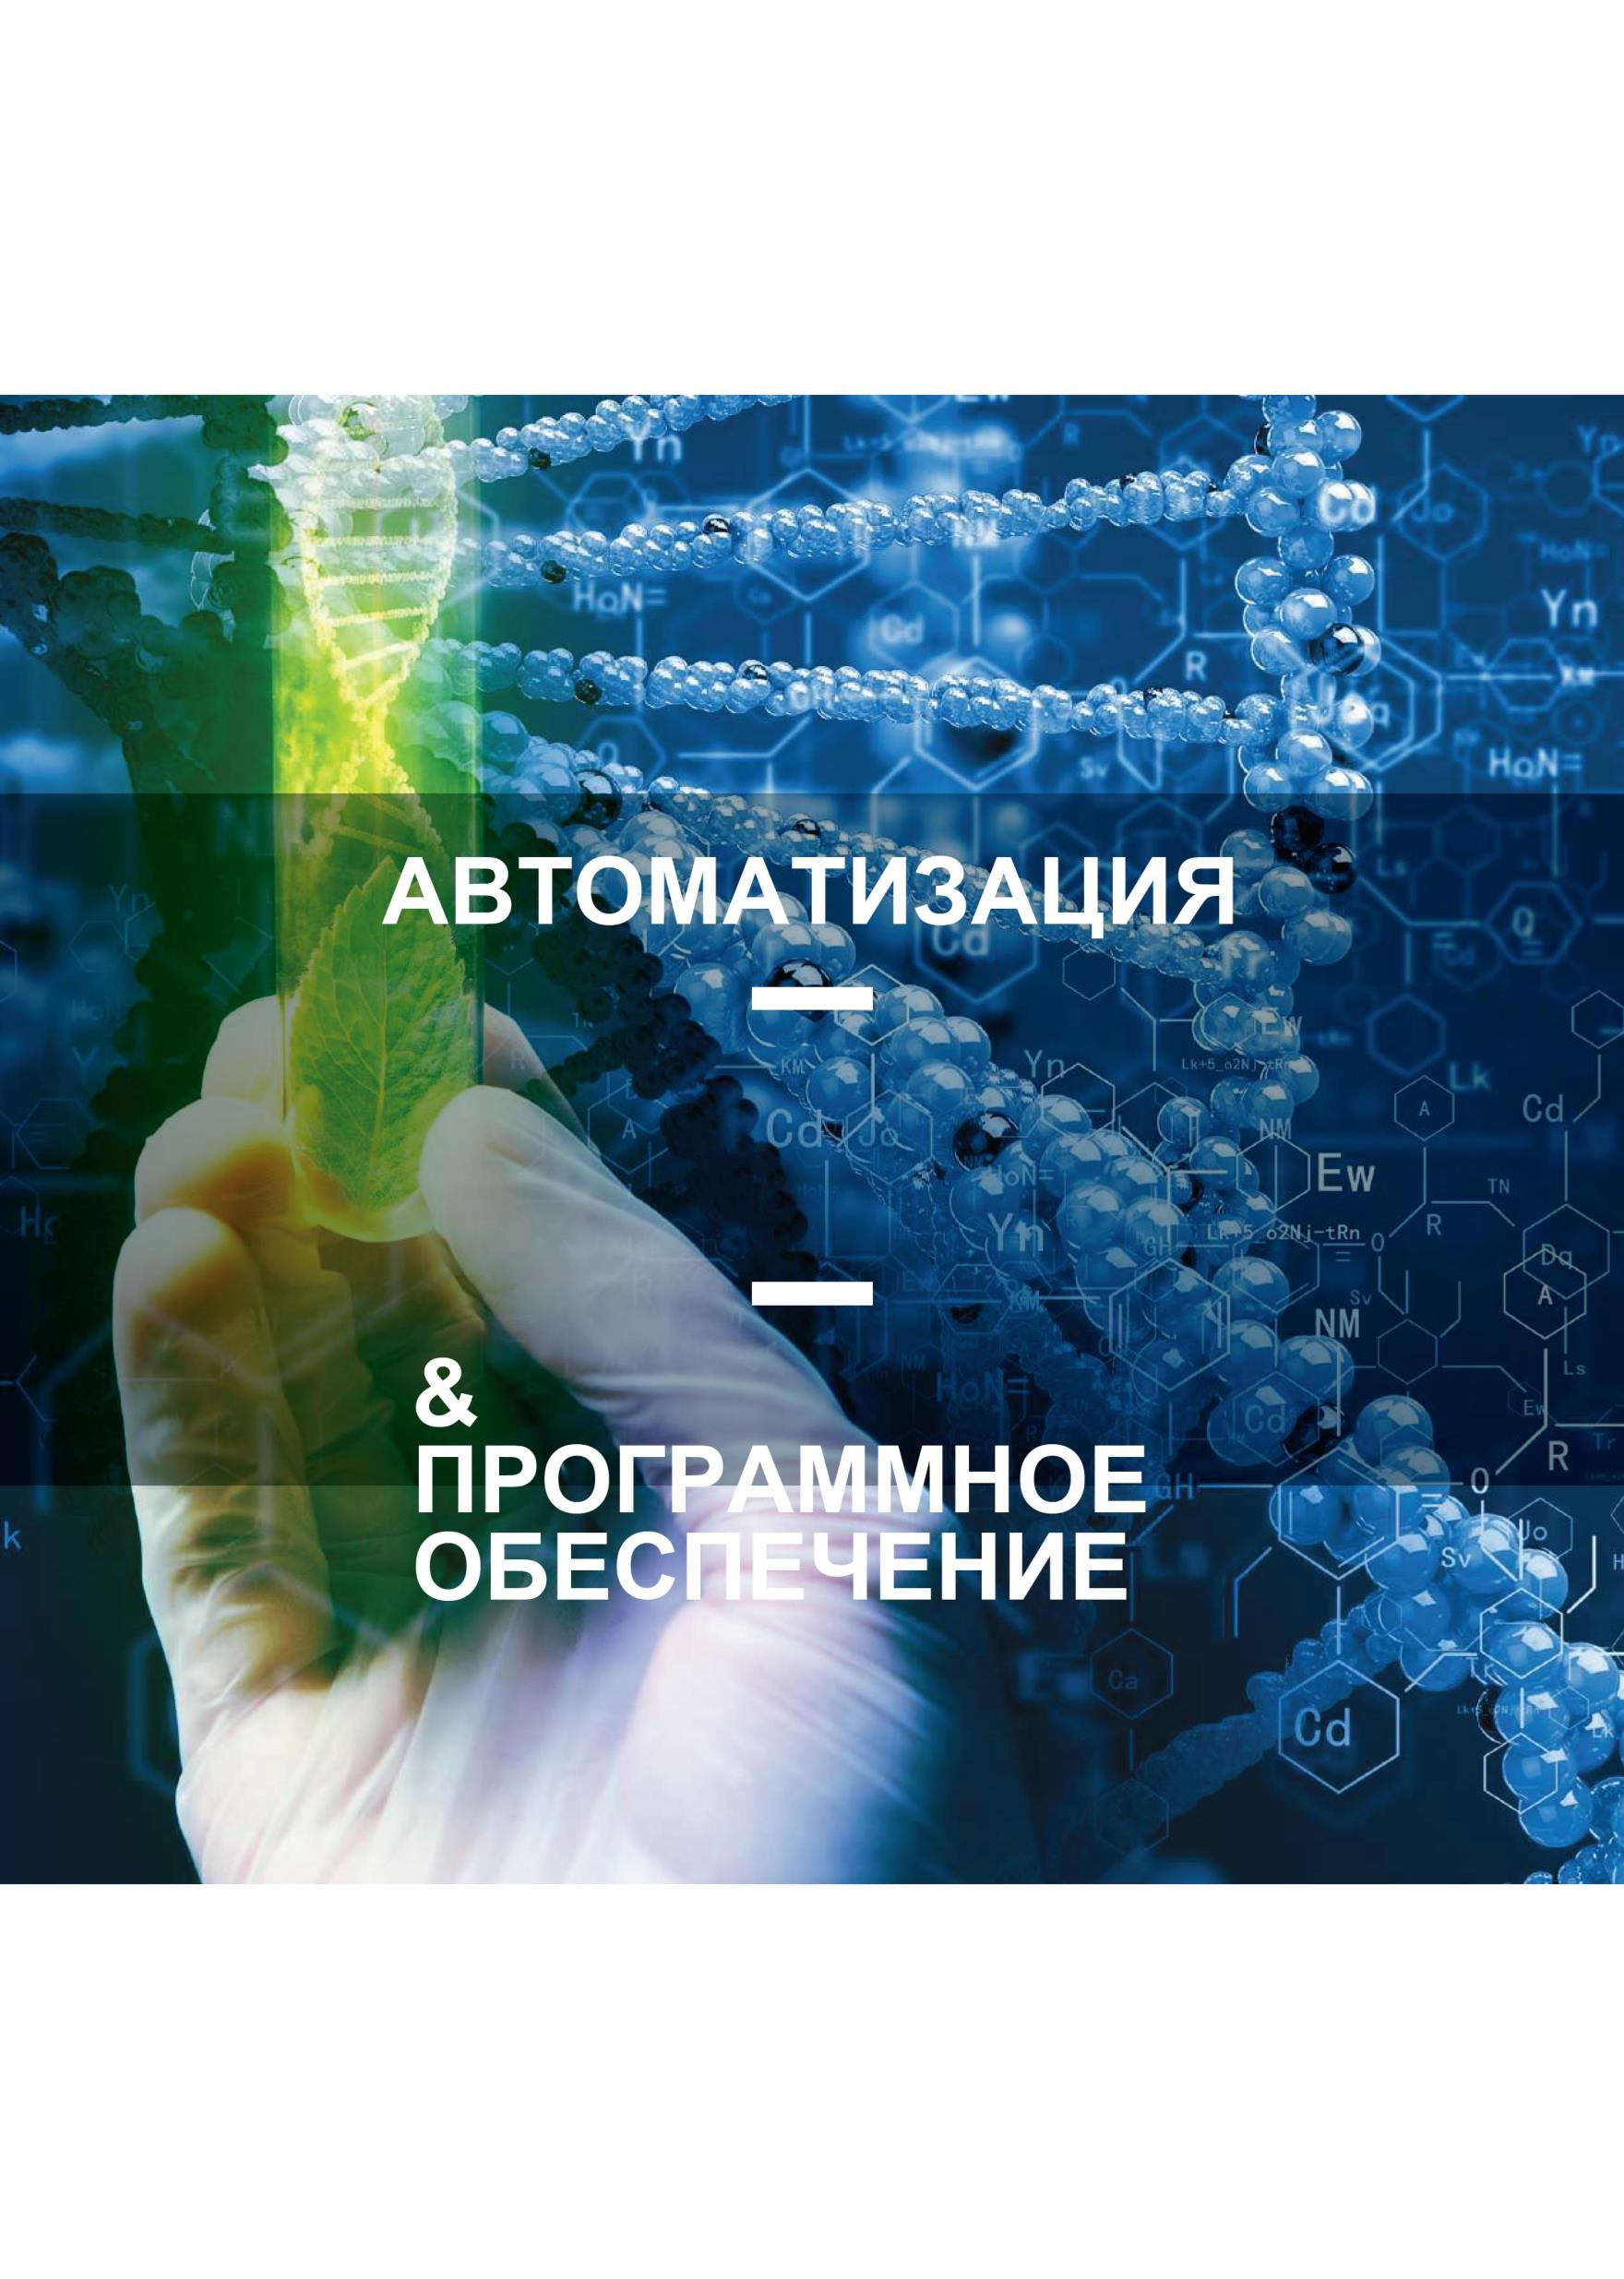 General Catalogue Solida Biotech GmBH2_compressed (2 - 0025